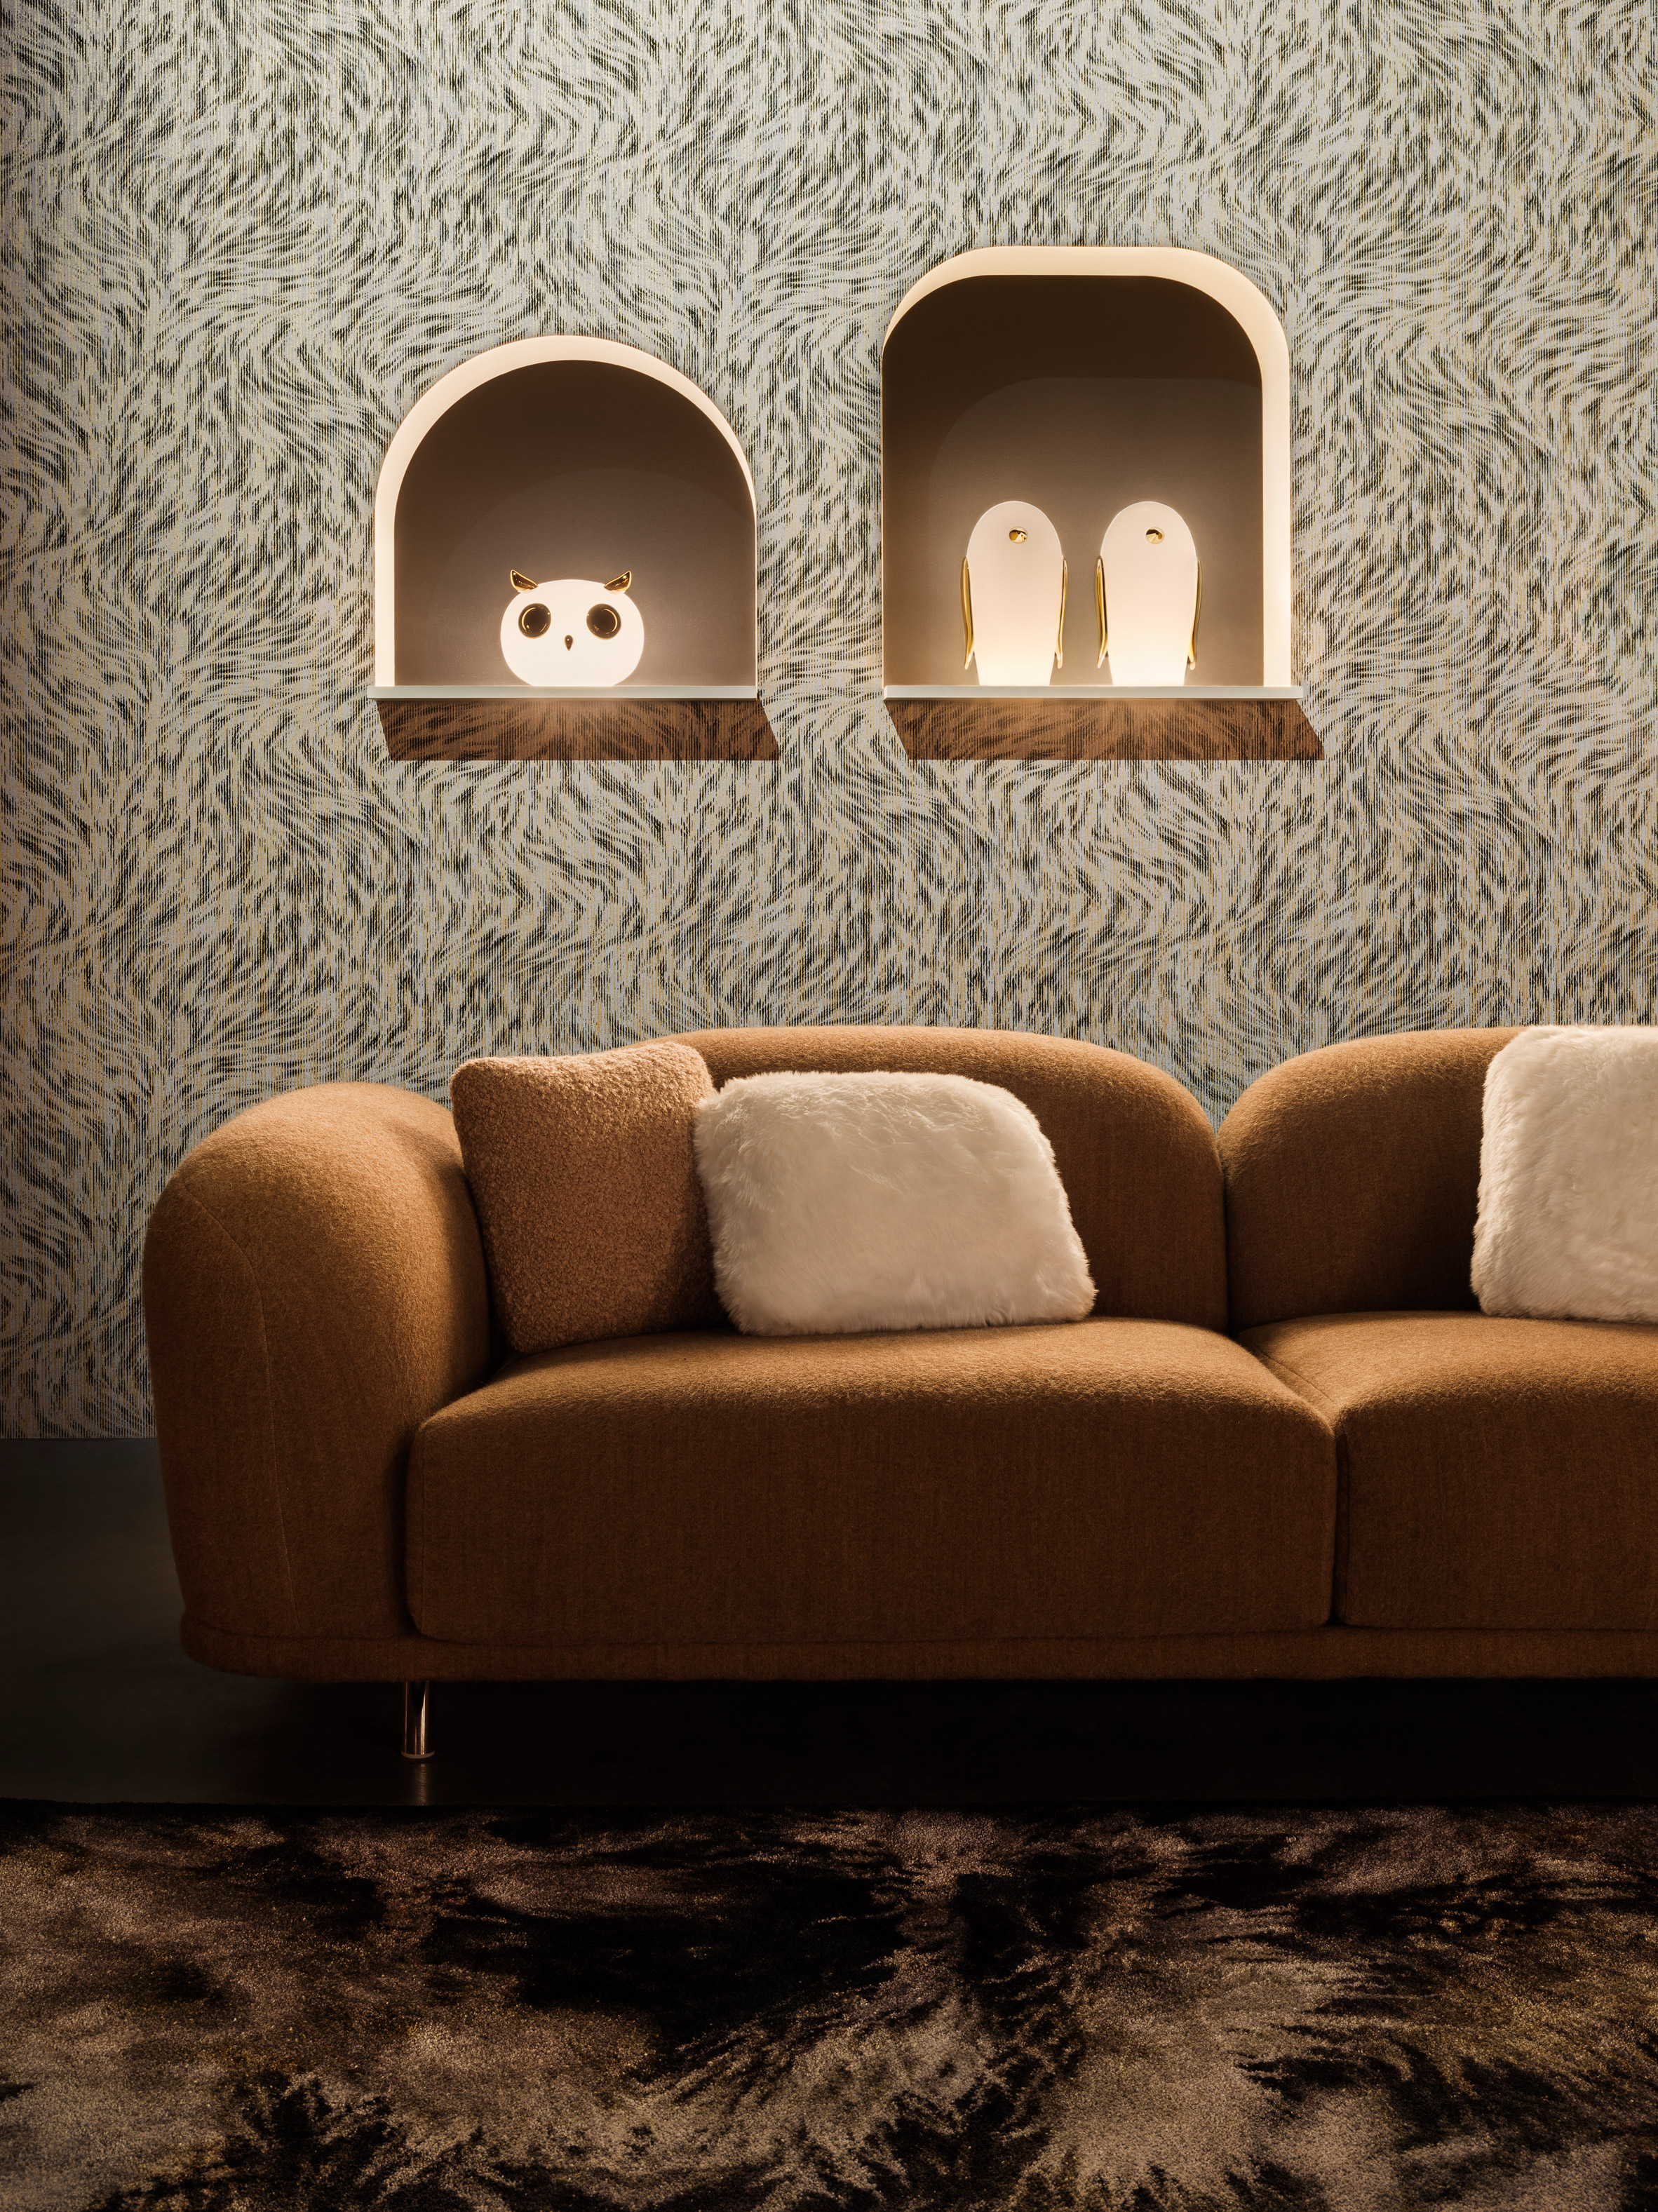 Moooi wallpaper inspired by drawings of extinct animals